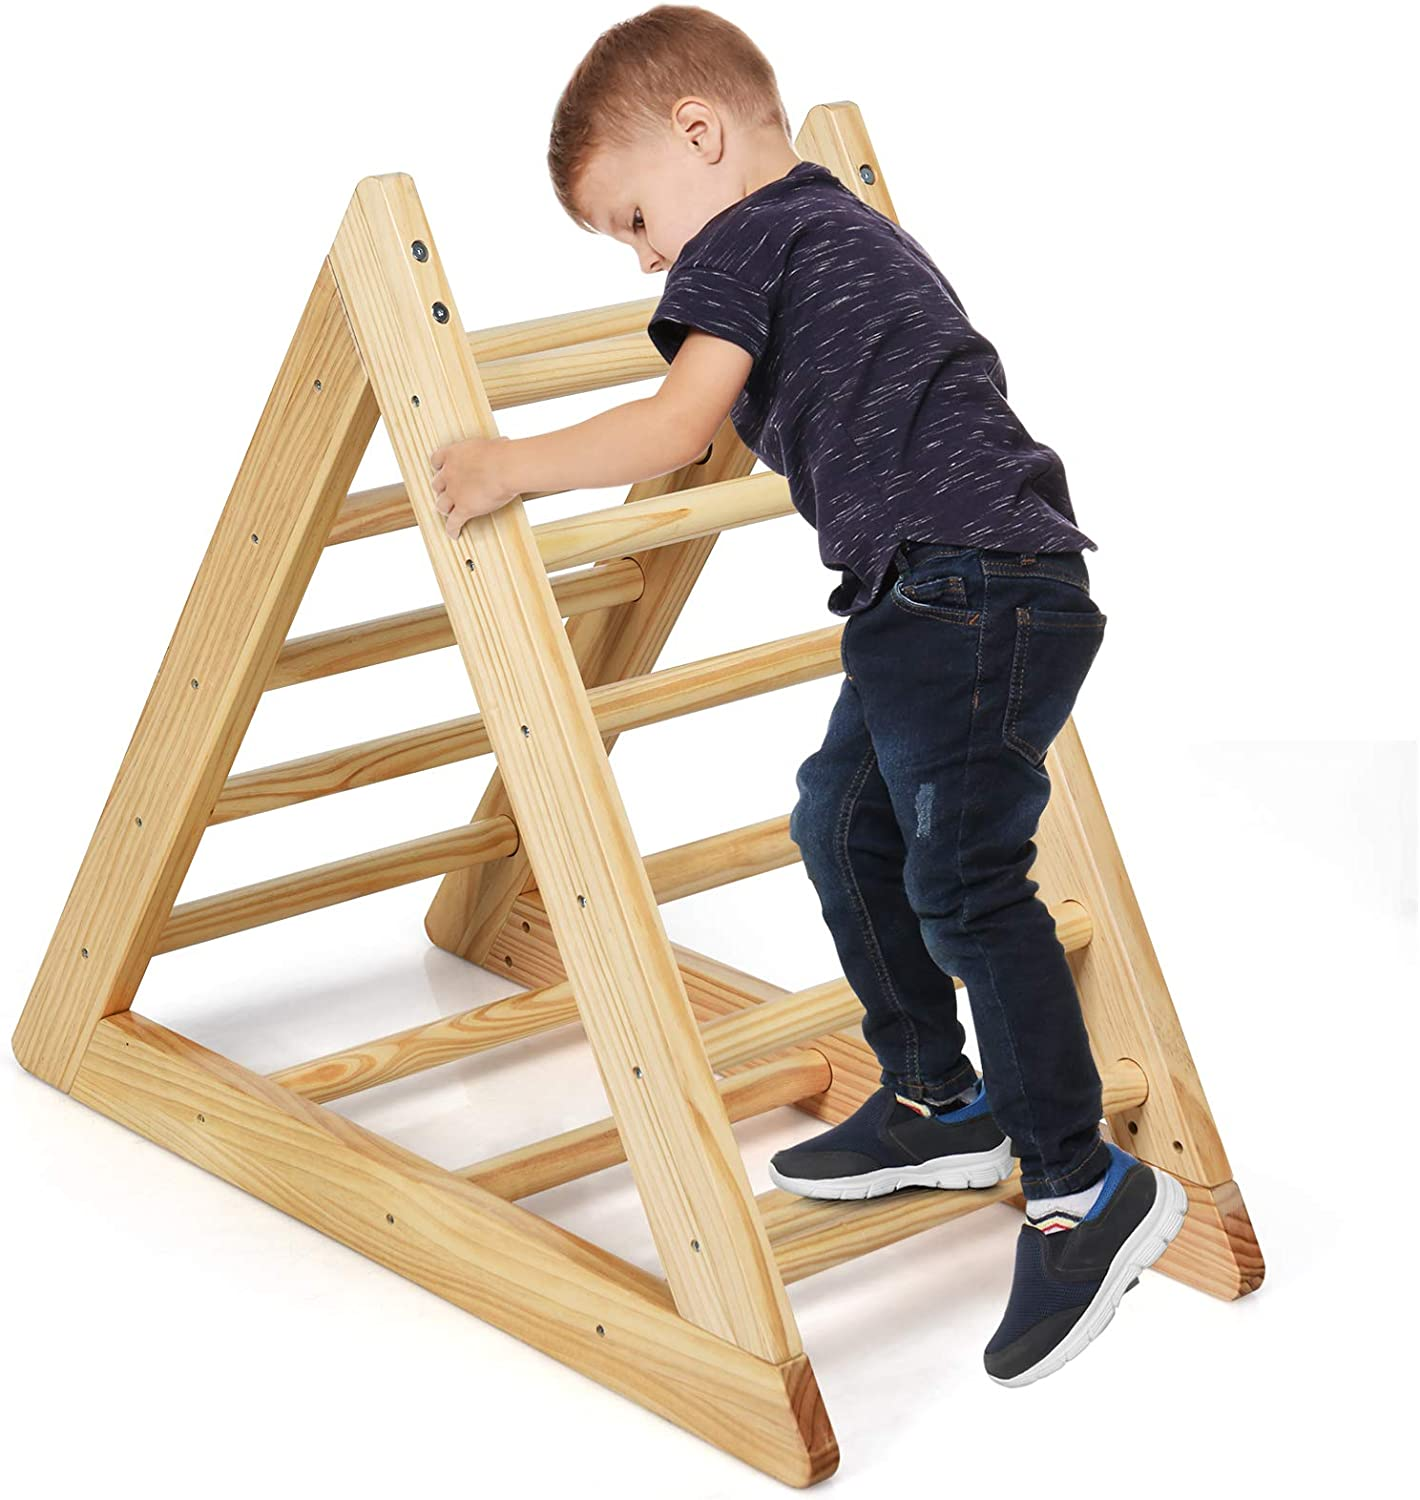 GLACER Wooden Climbing Triangle Ladder, Toddler Triangle Climber